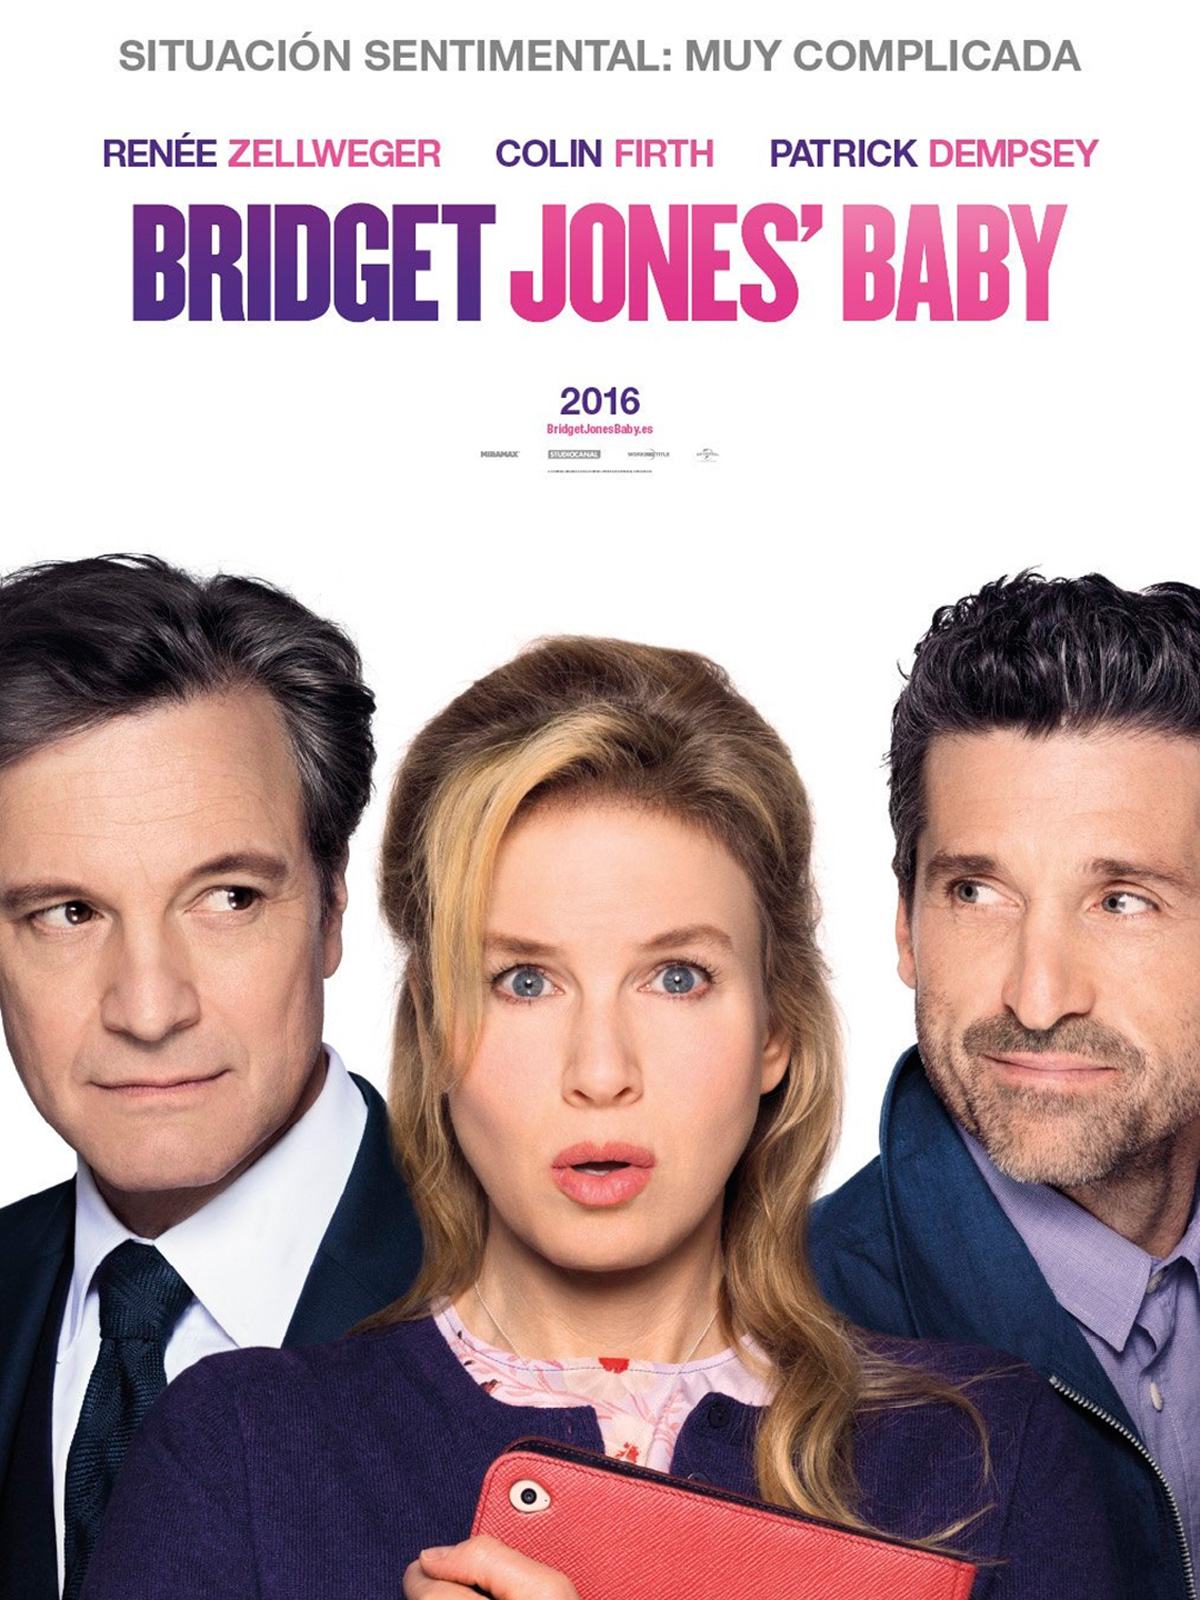 póster de Bridget Jones' baby